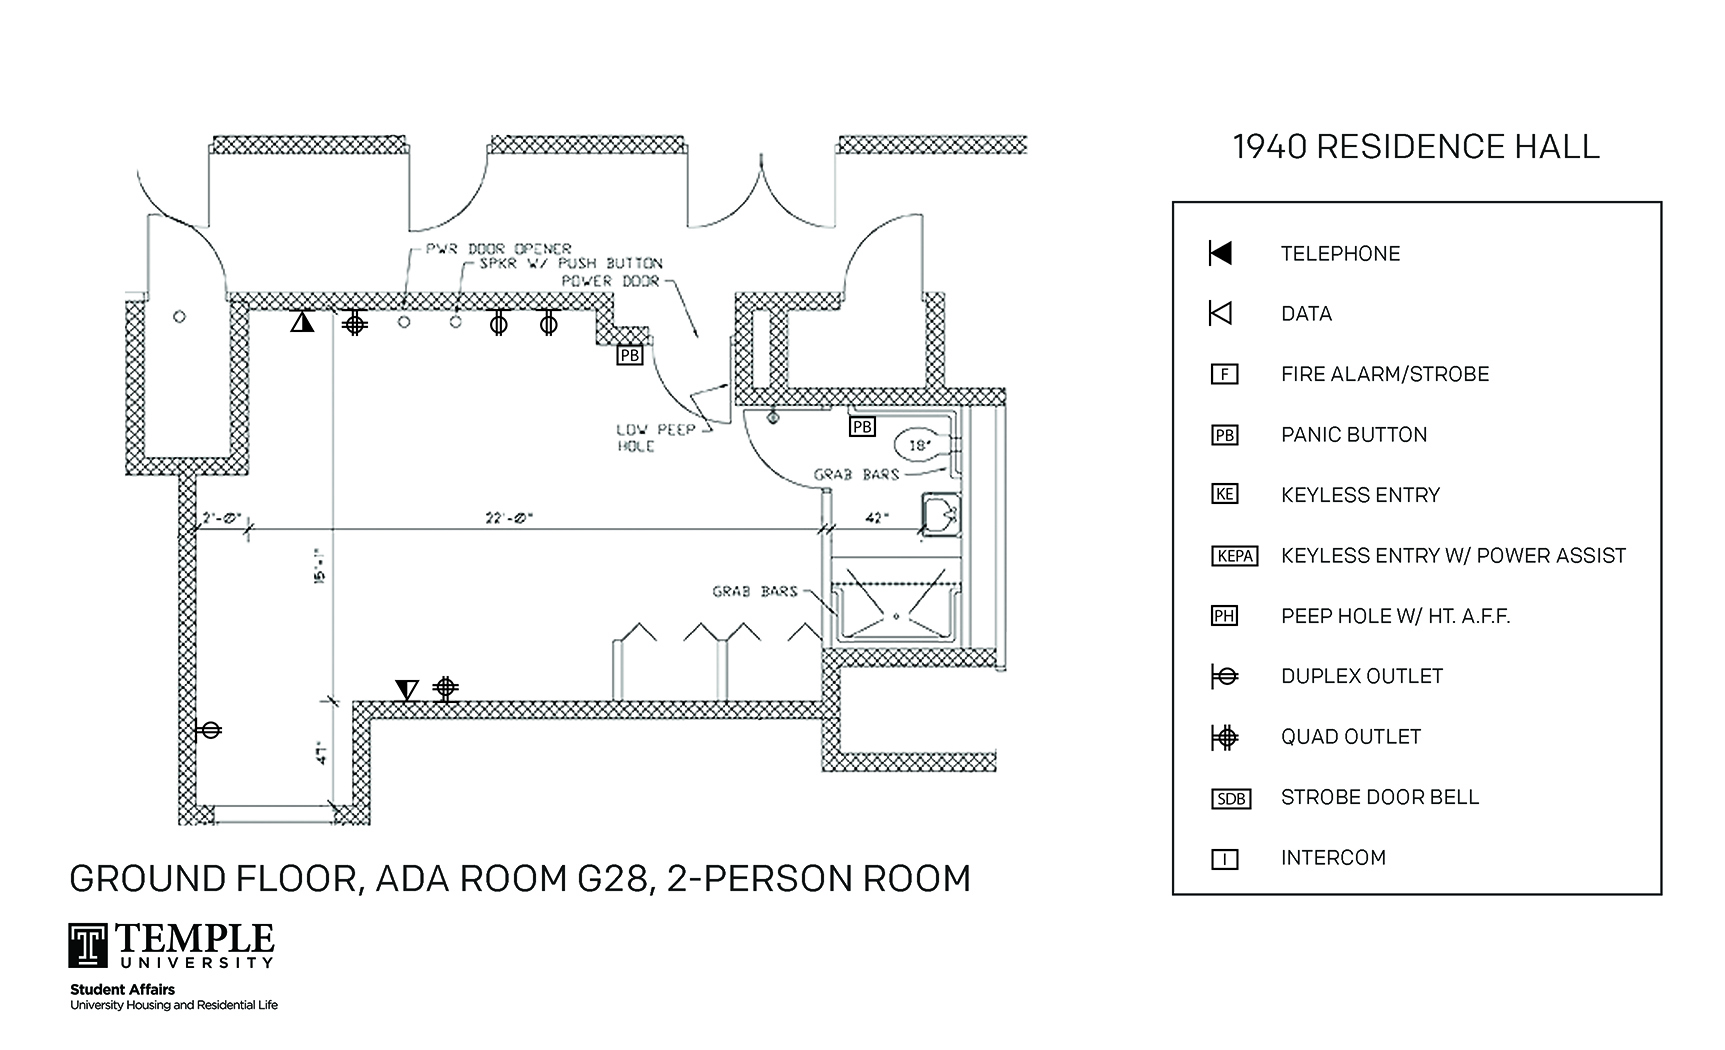 Accessible Room Diagrams: 2 person, 1 bedroom Suite - G28